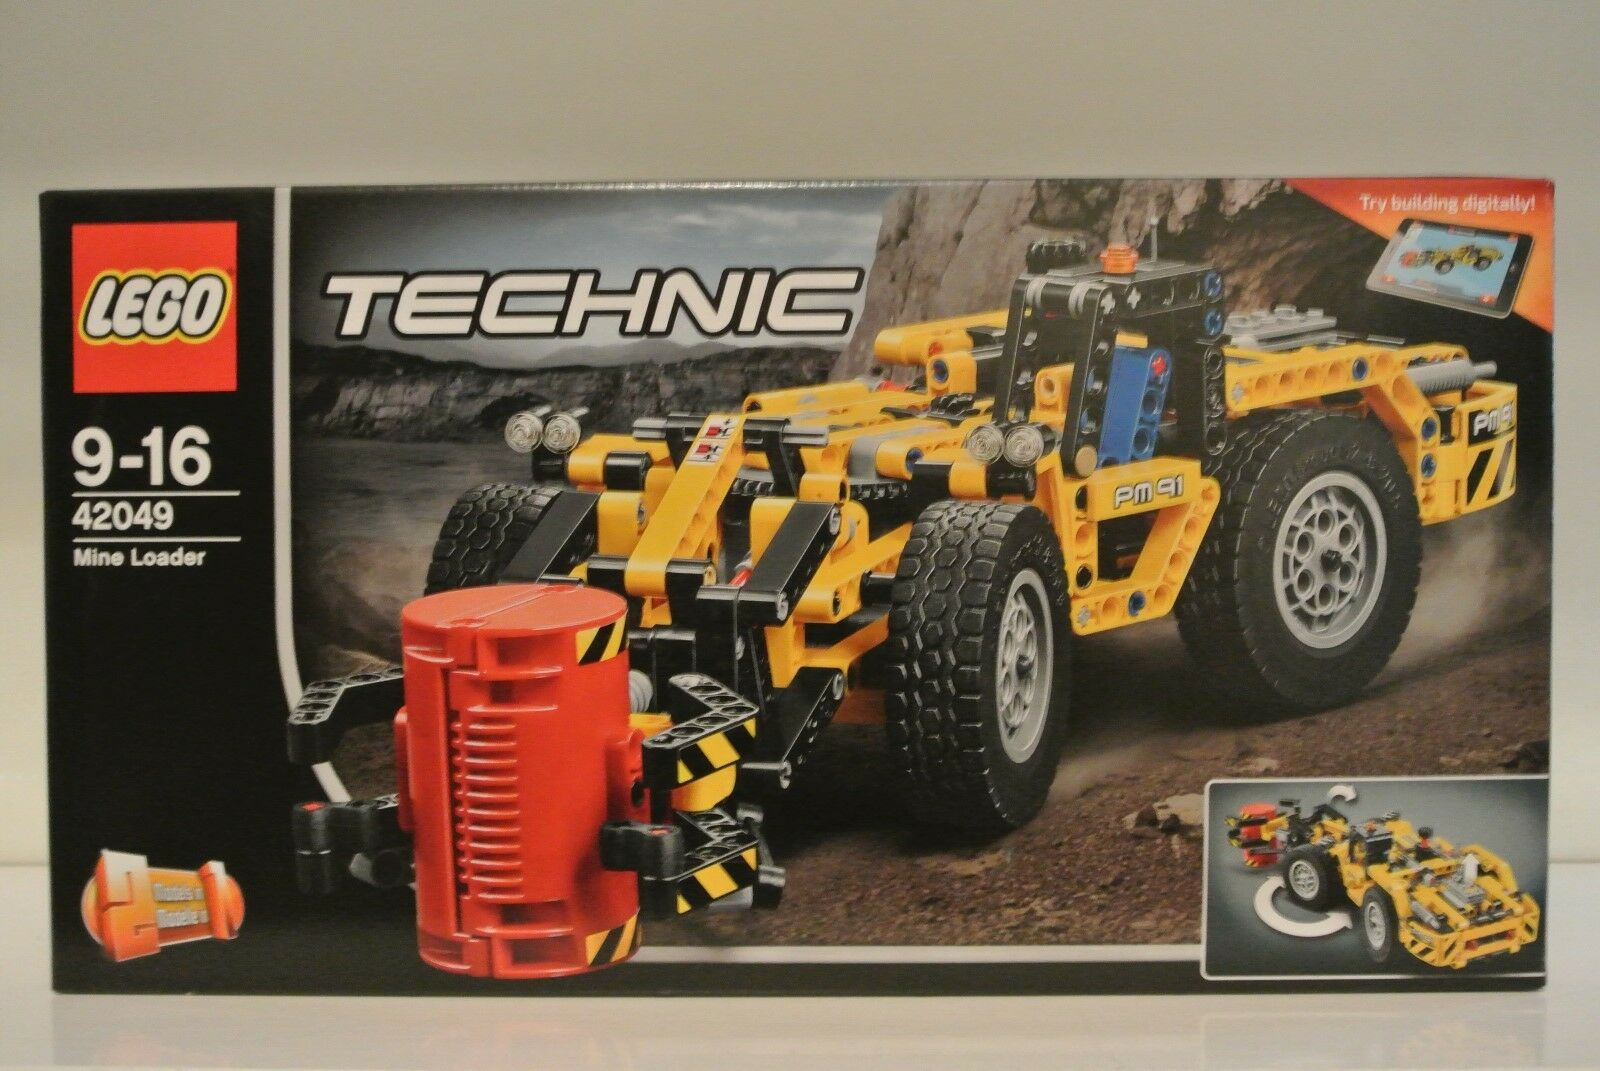 Lego Technic 42049 - Mine Loader - BRAND NEW FACTORY SEALED